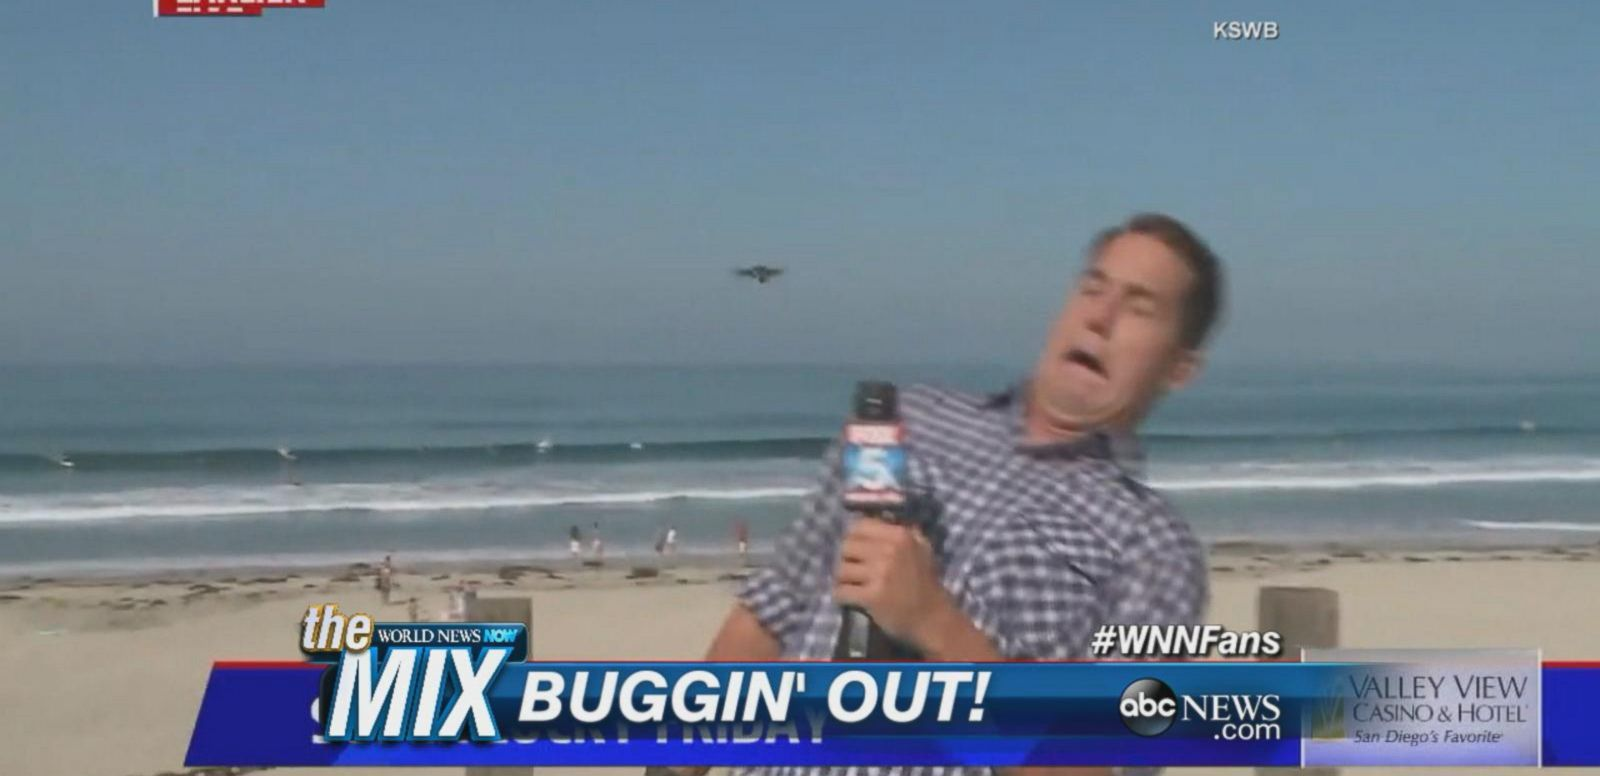 VIDEO: Weatherman Brad Willis had an on-air run-in with a very large insect.